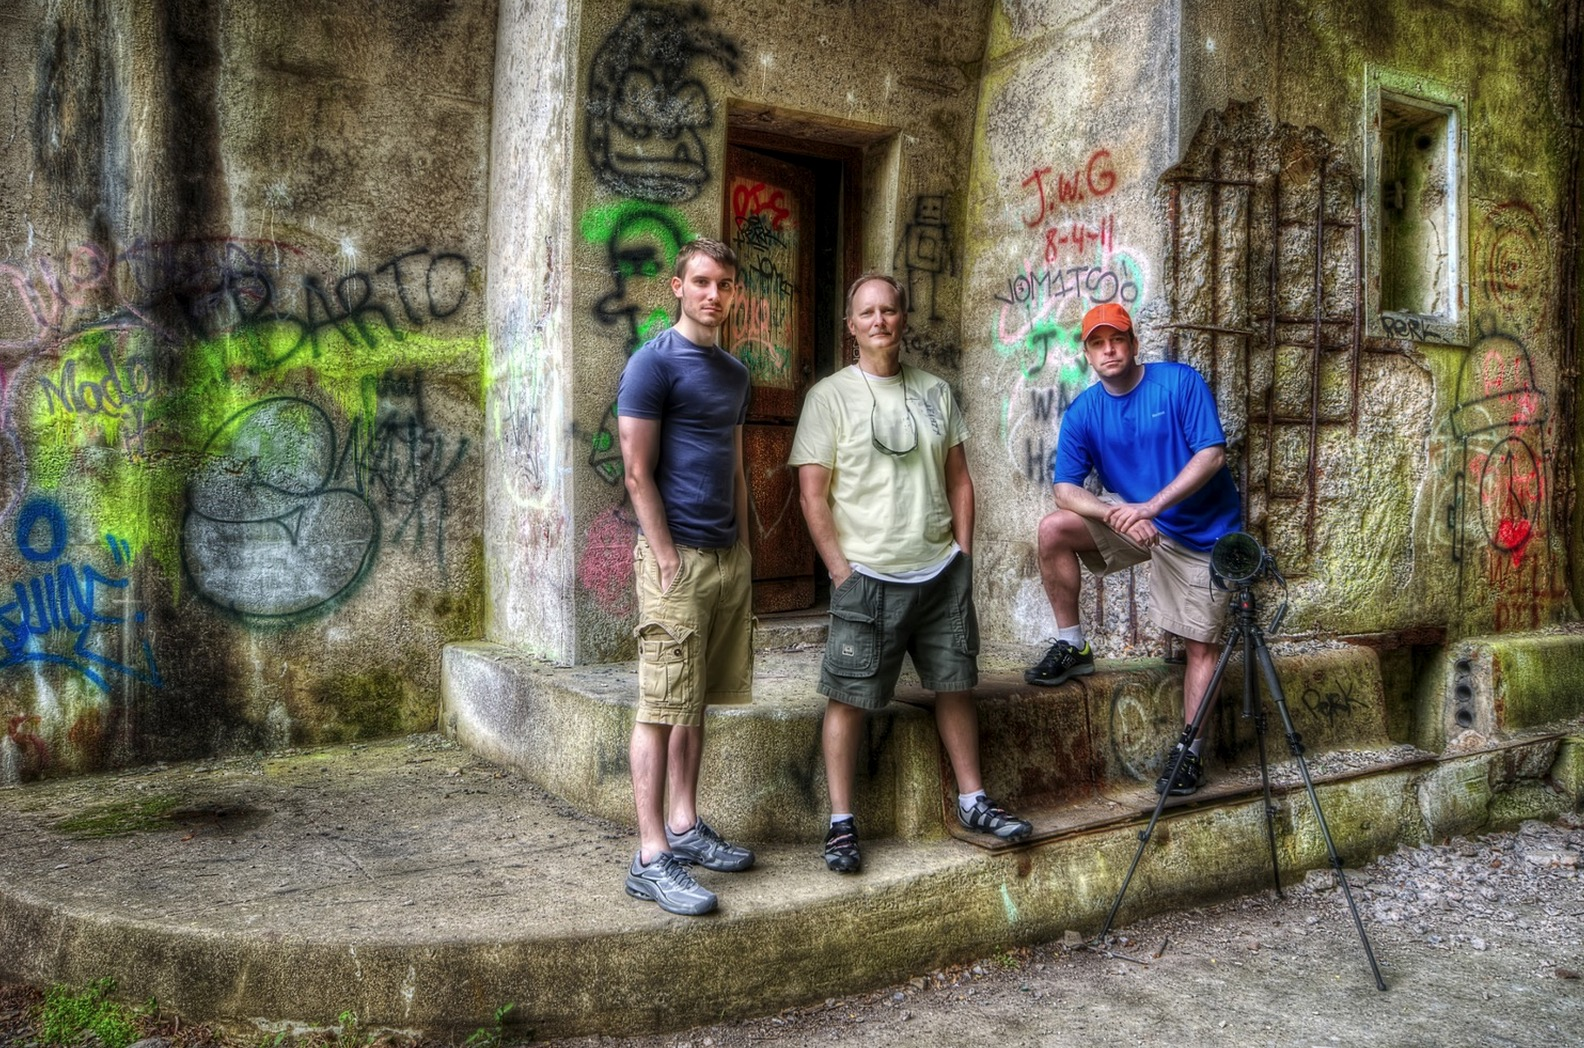 Photo taken and processed by Brad Truxell: From left to right, Brad Truxell, Dave Truxell, and Brook Ward. This was taken in the entrance of a tunnel on the Abandoned Pennsylvania Turnpike on our photowalk (well we biked the abandoned road).